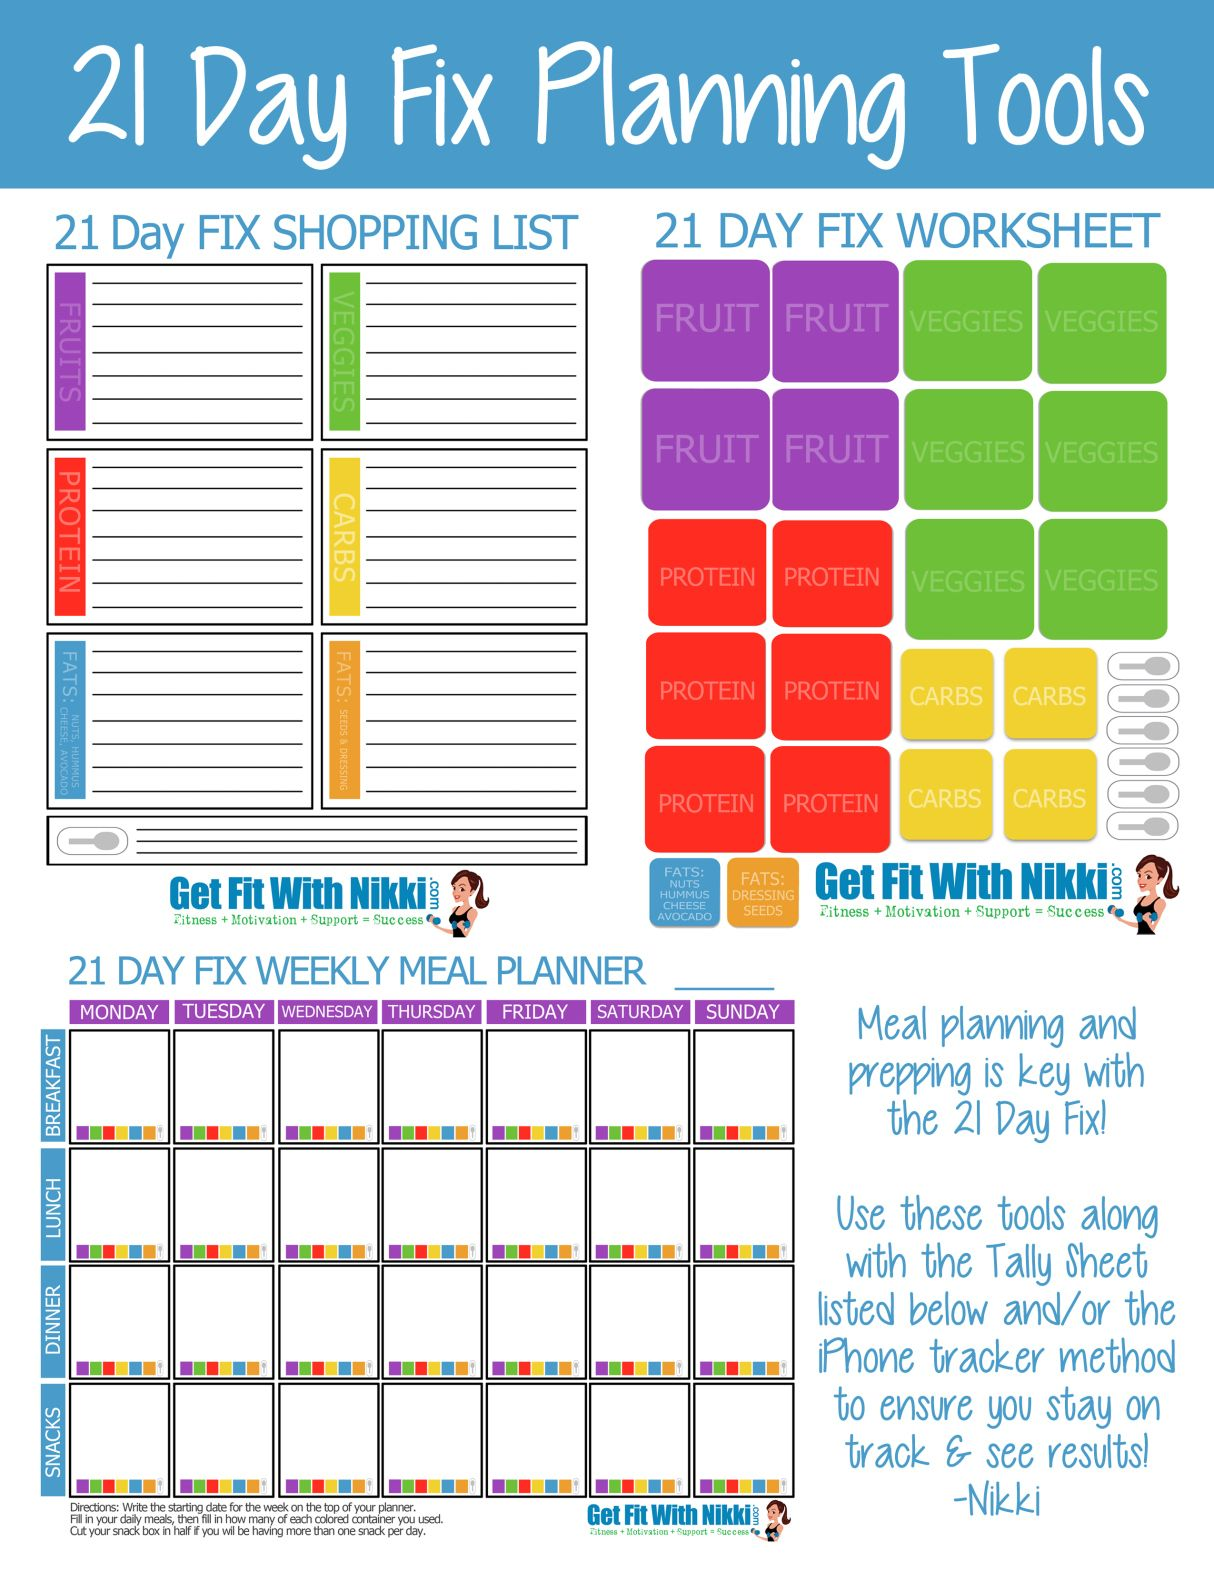 21 day fix: meal planning tips & my favorite foods | keeping healthy